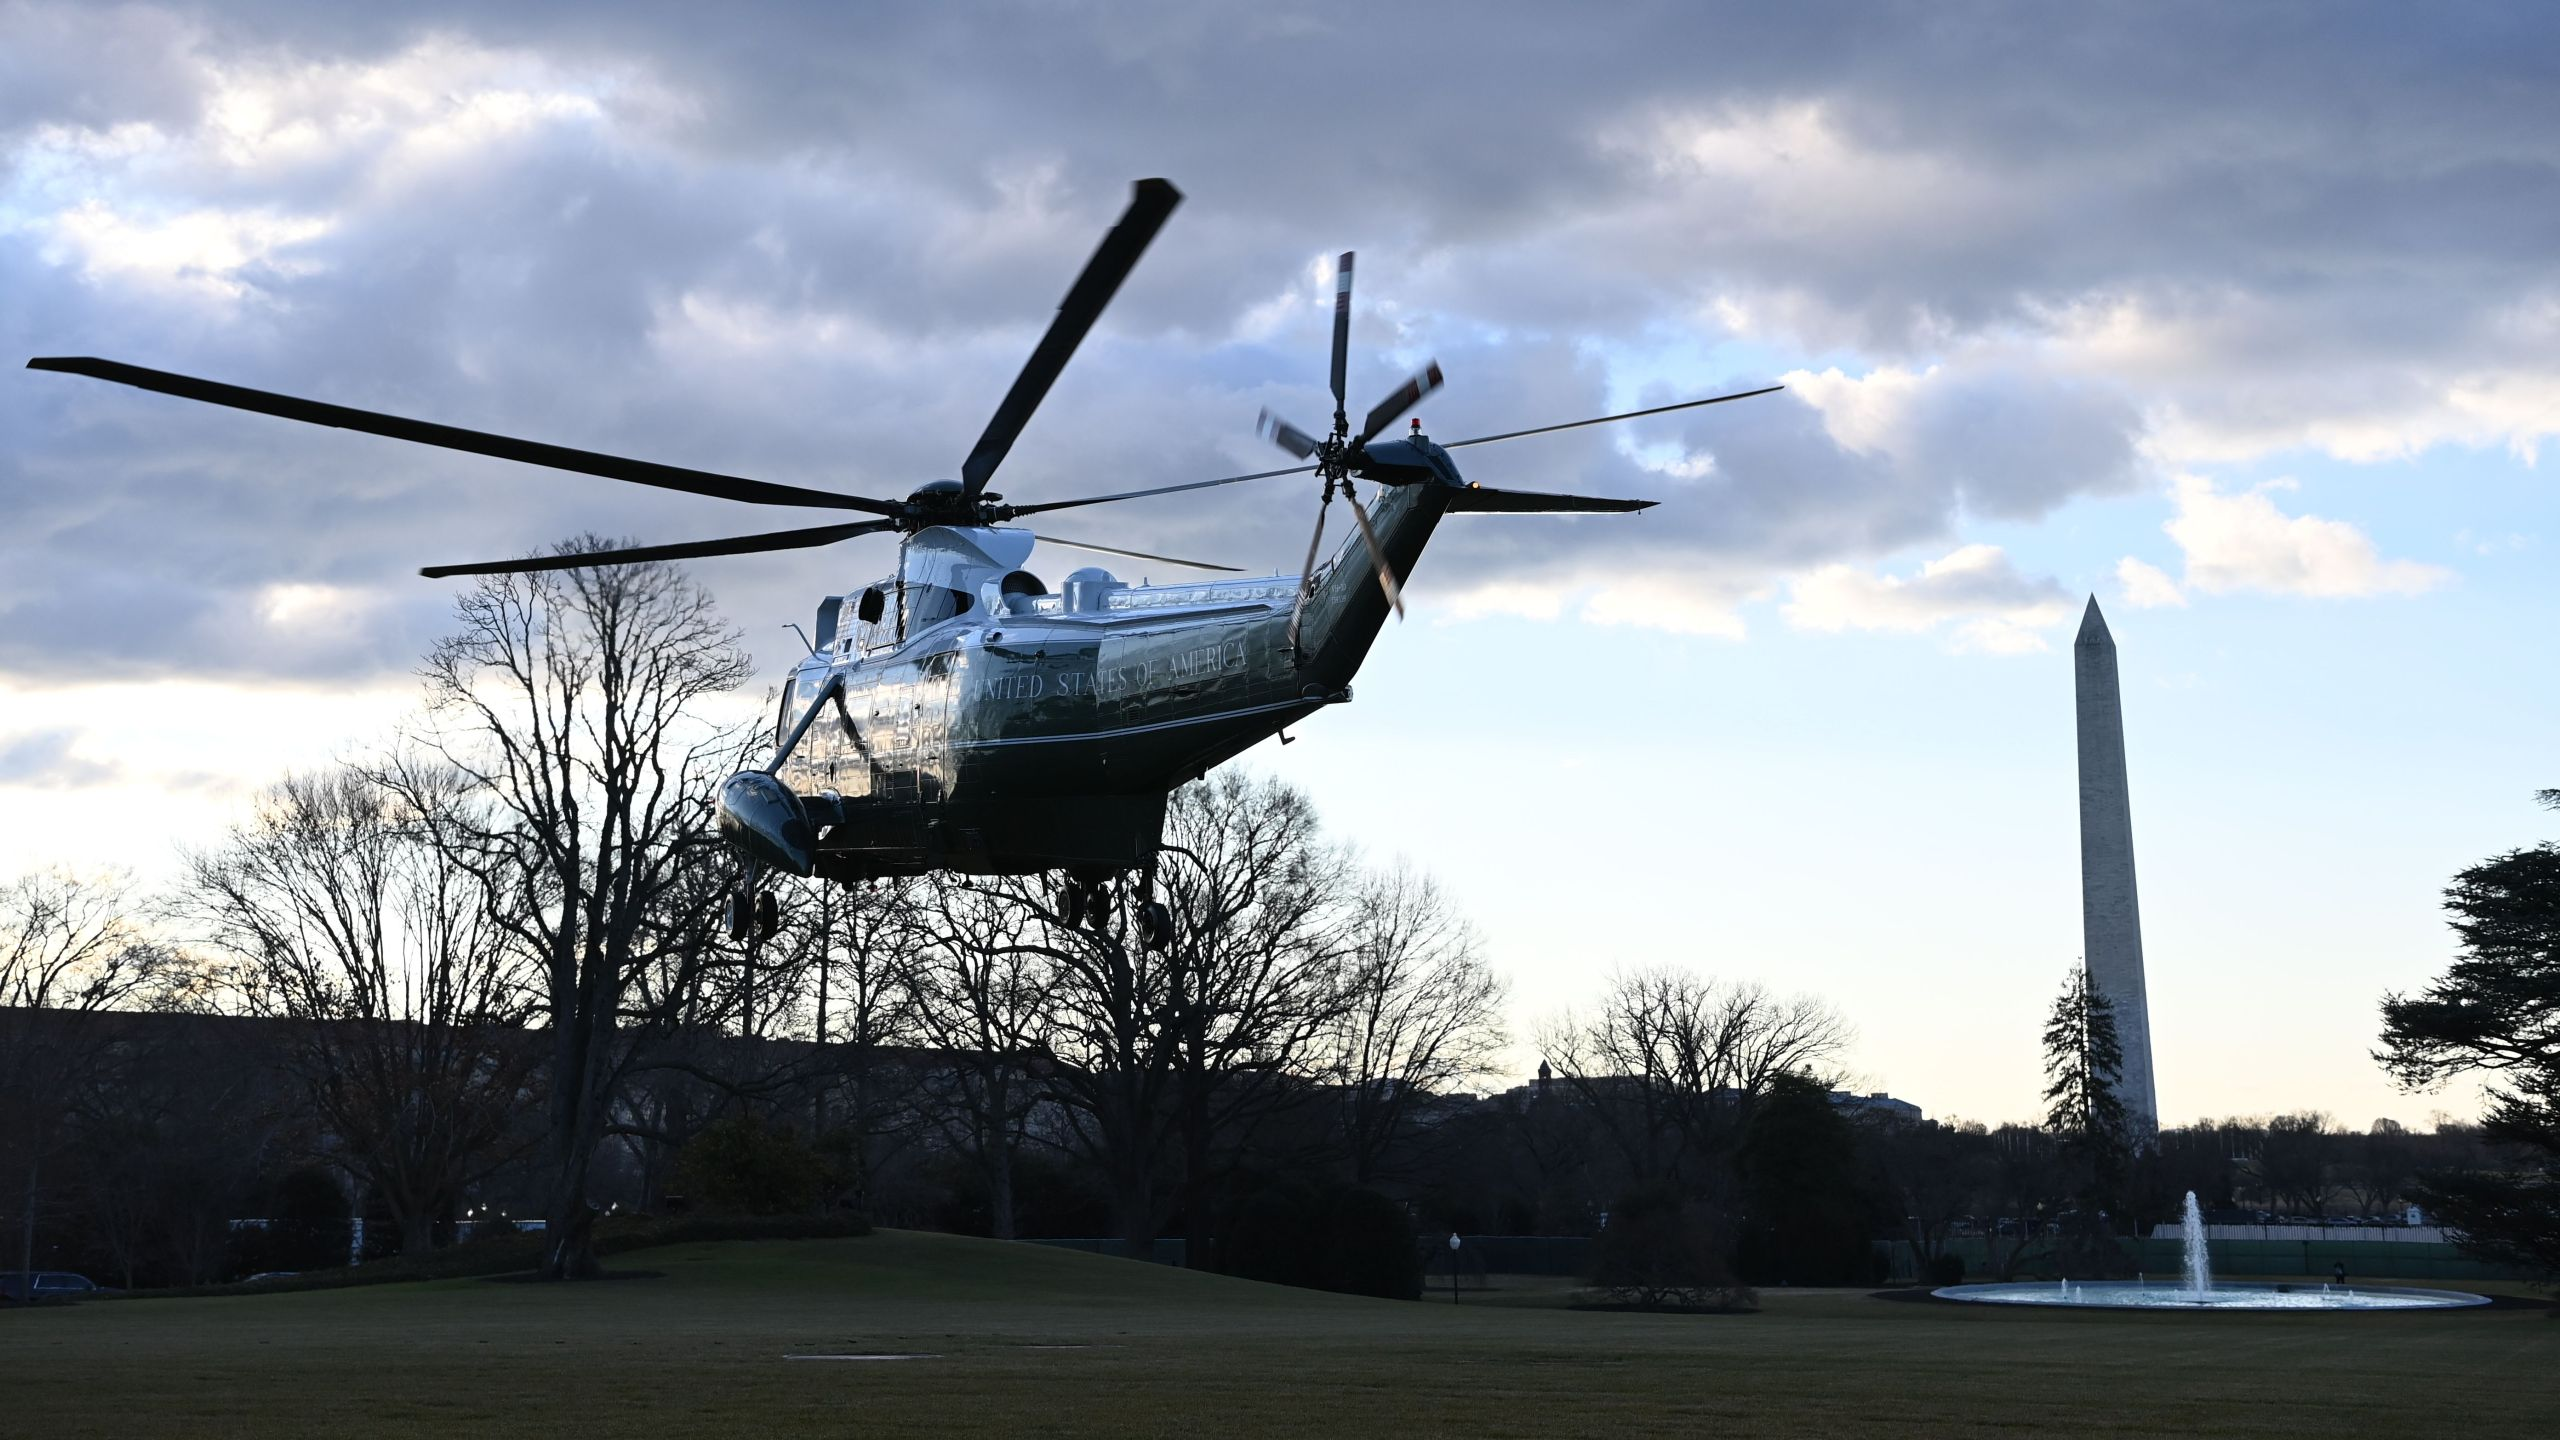 Marine One with US President Donald Trump and First Lady Melania Trump departs the White House in Washington, DC, on January 20, 2021. (MANDEL NGAN/AFP via Getty Images)